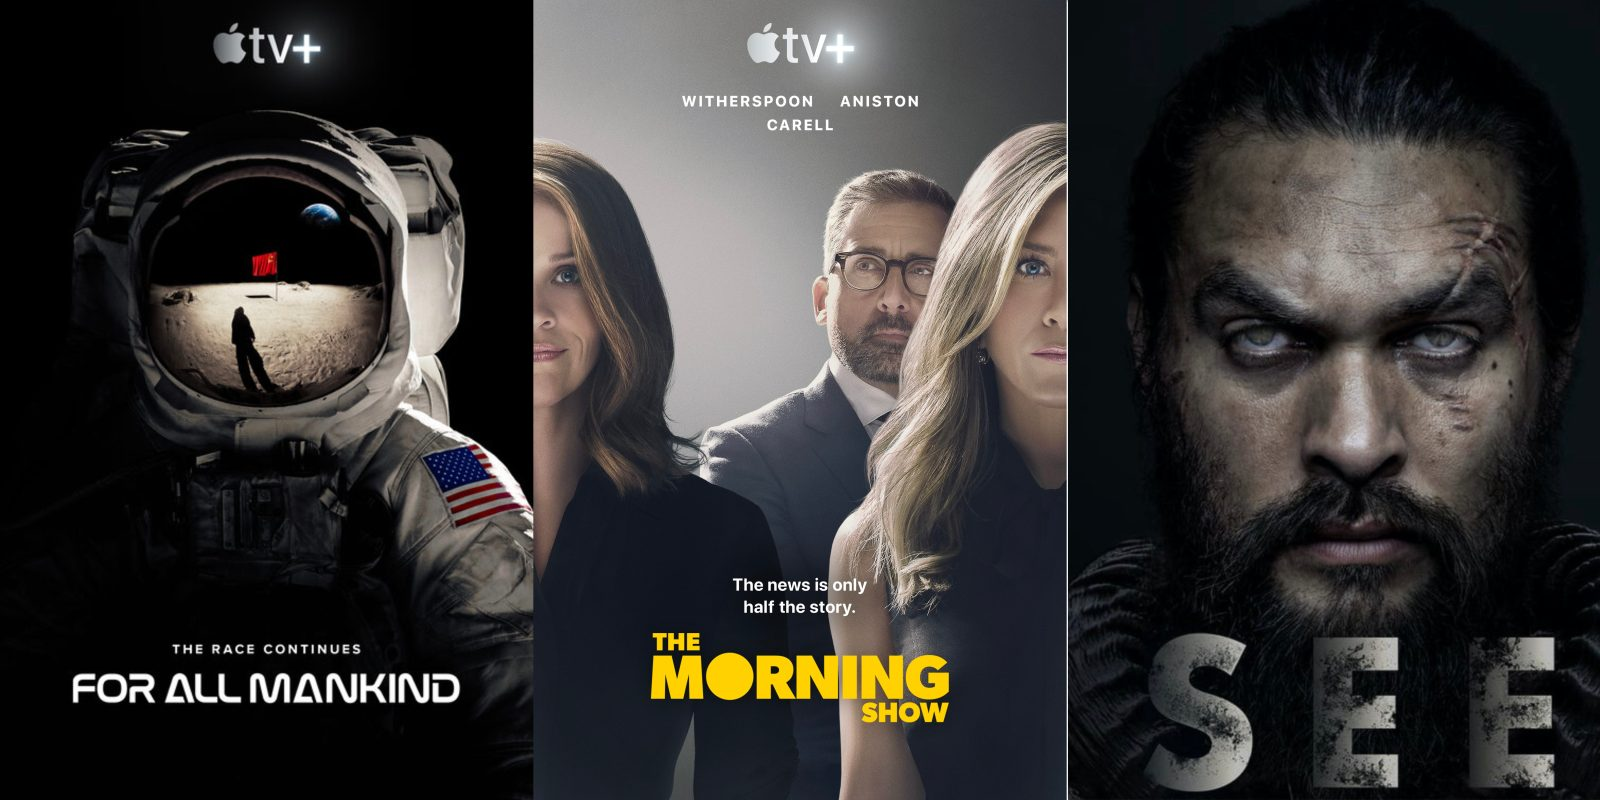 Episode 4 of The Morning Show, See, and For All Mankind now available on Apple TV+